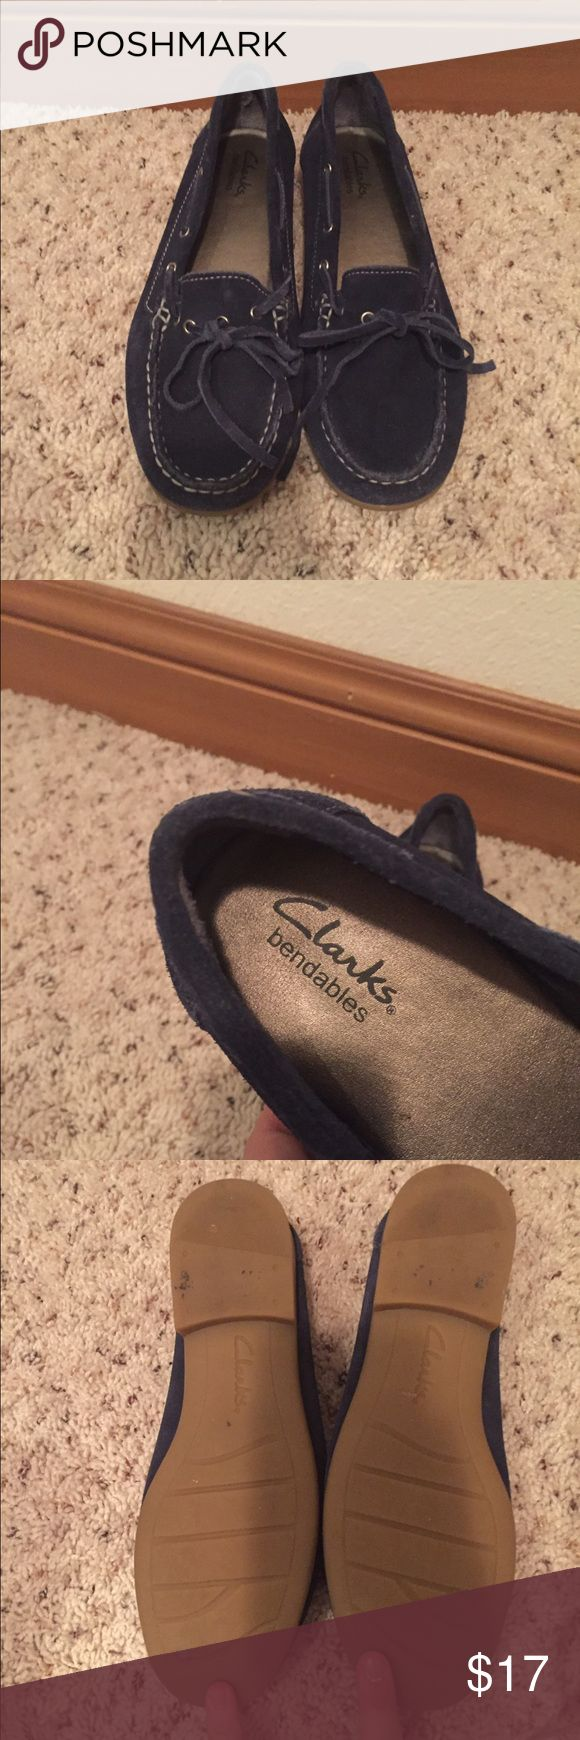 Clarks Bendable suede blue boat shoes size 6 Super comfy cloth moccasins in a boat show style! Clarks Shoes Flats & Loafers